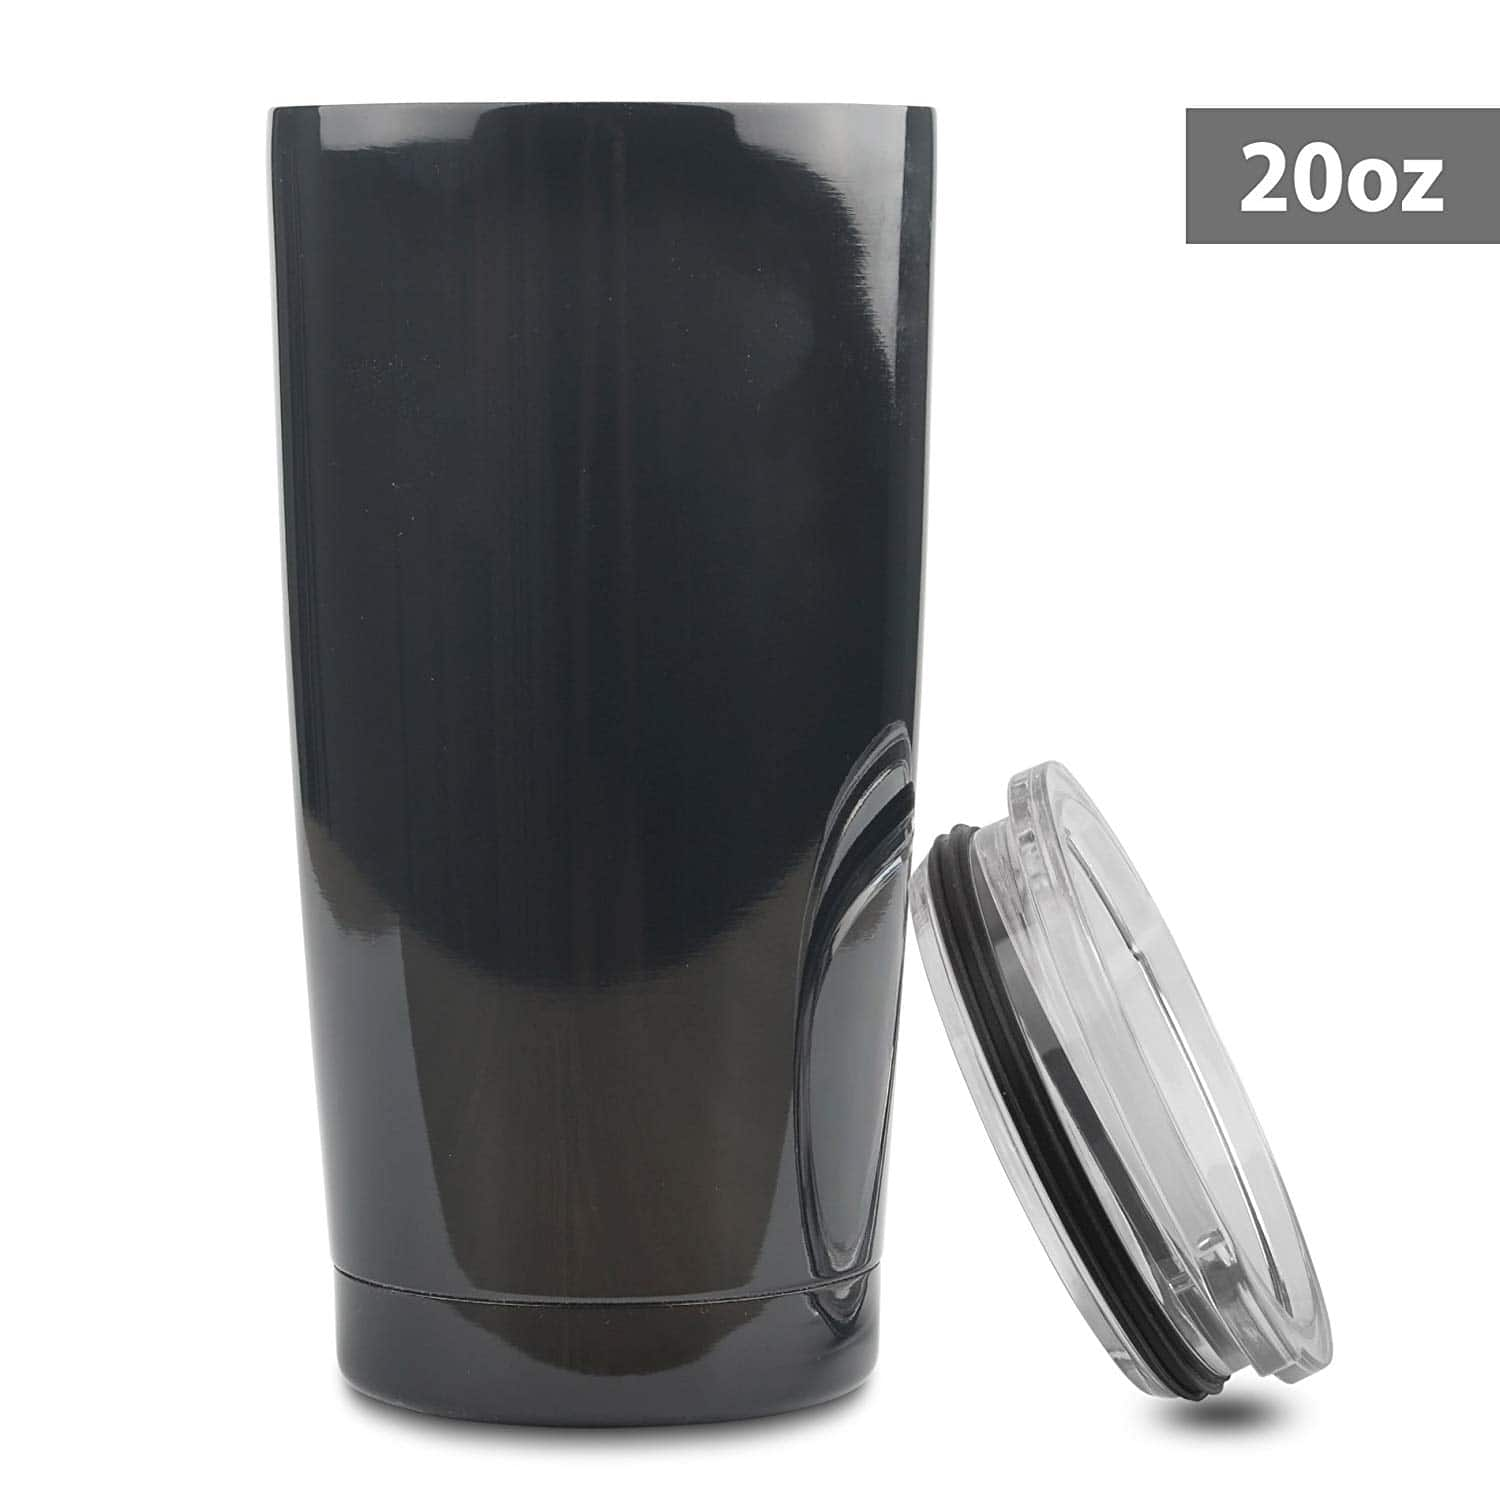 Amazon has 20oz Stainless Steel (SS) Double-Wall Vacuum Tumbler for $4.6, 30oz for $5.9. Free Shipping